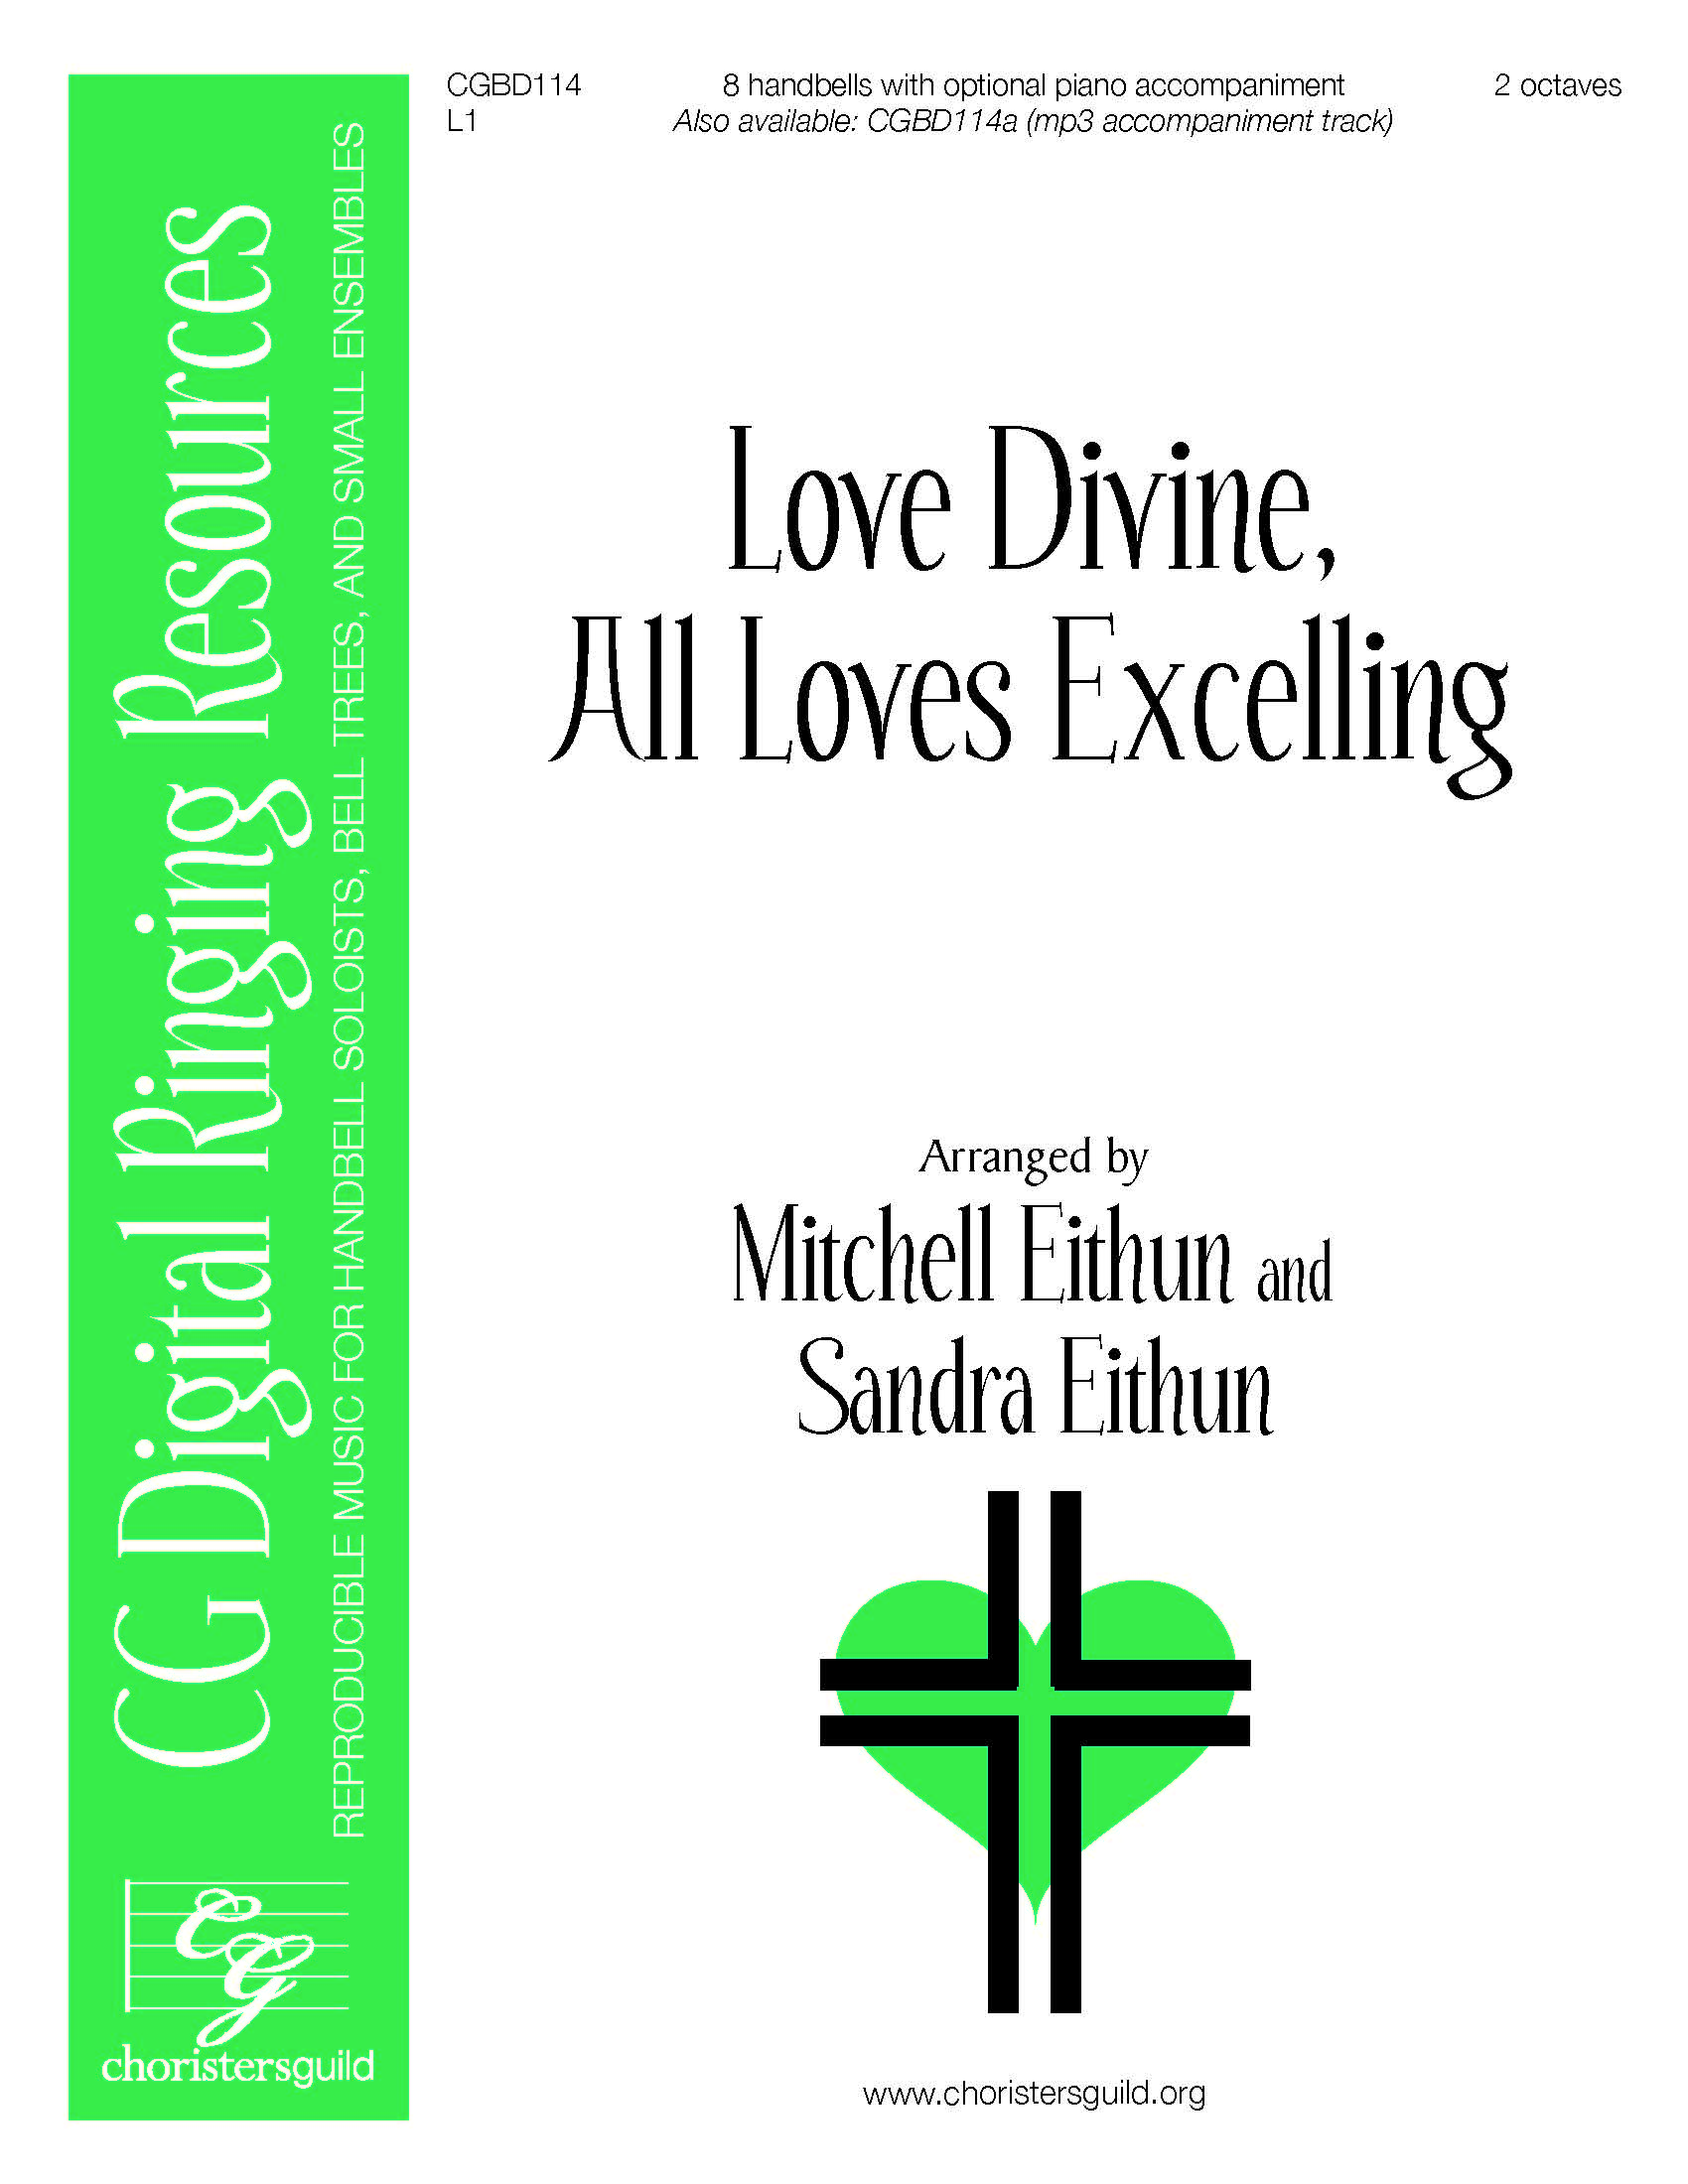 Love Divine, All Loves Excelling - Digital Accompaniment Track